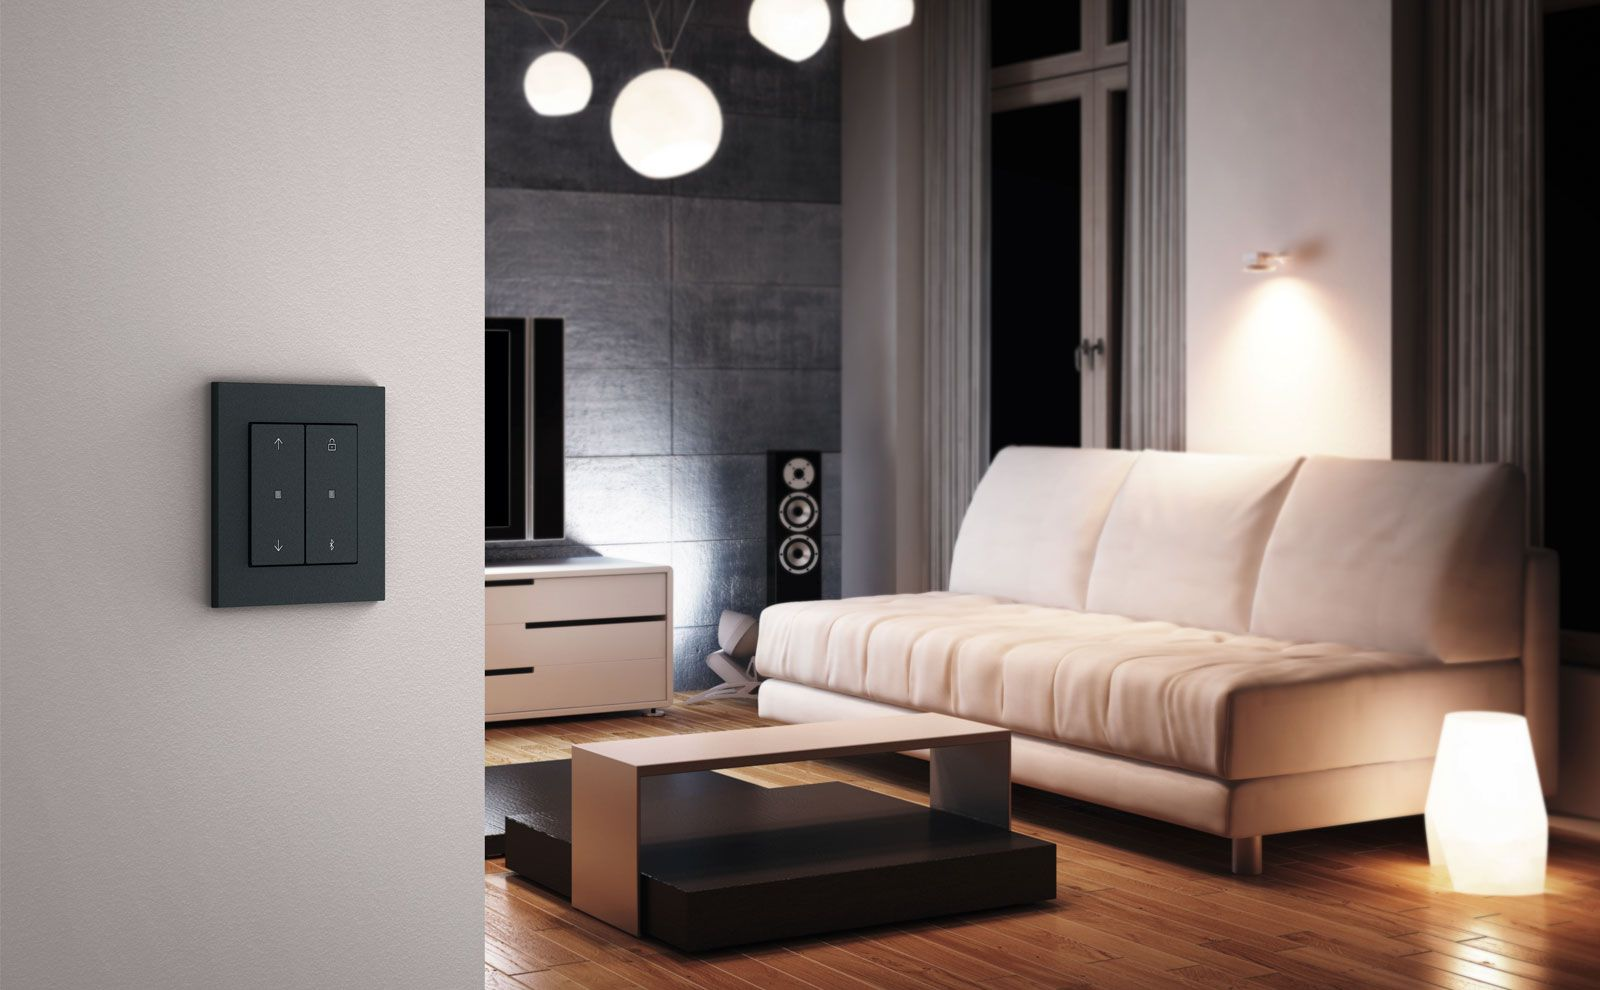 gira dimmers. Black Bedroom Furniture Sets. Home Design Ideas